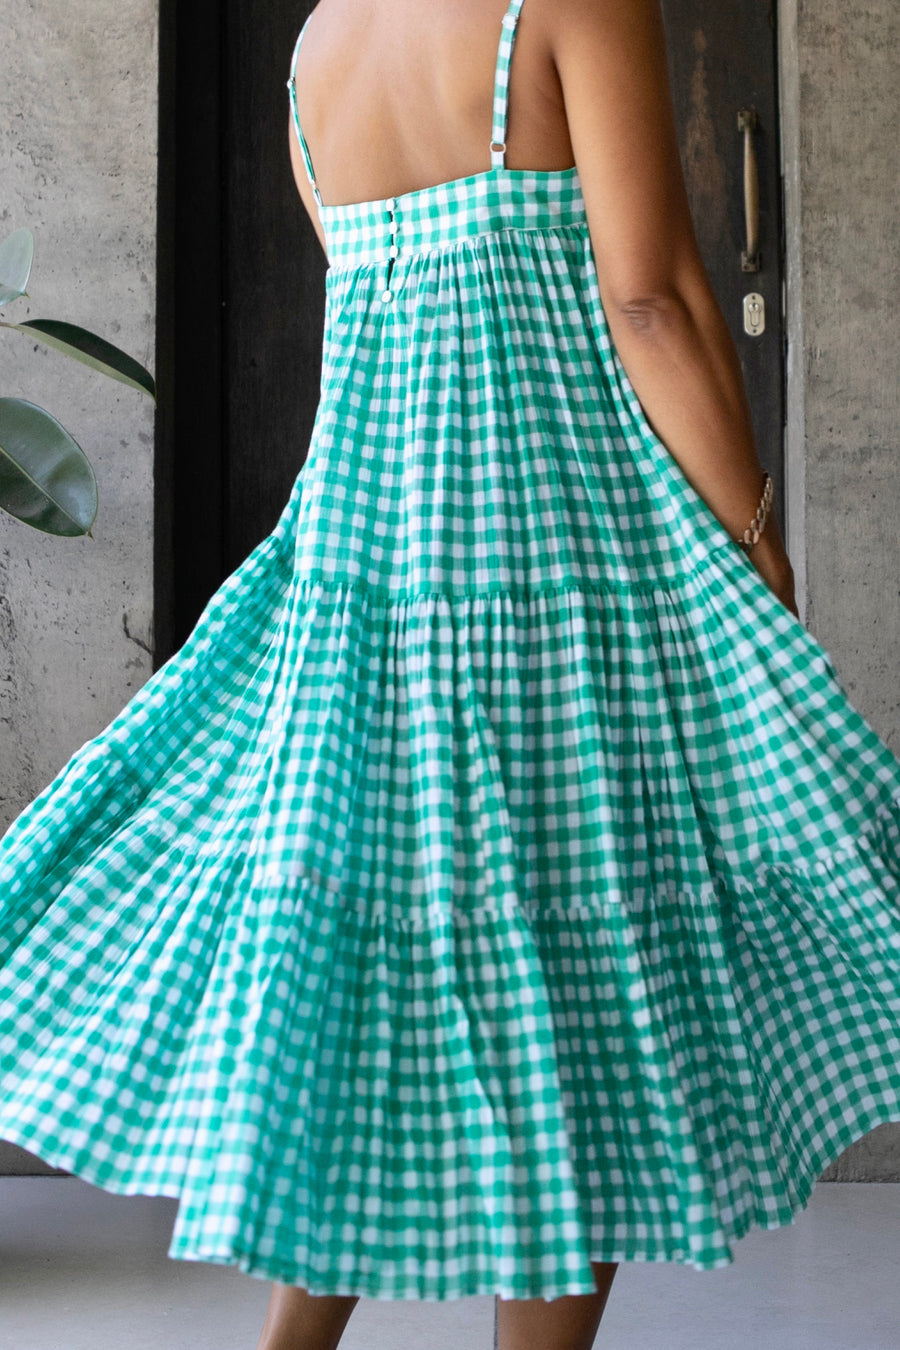 DOLLY JONES DRESS GINGHAM EMERALD